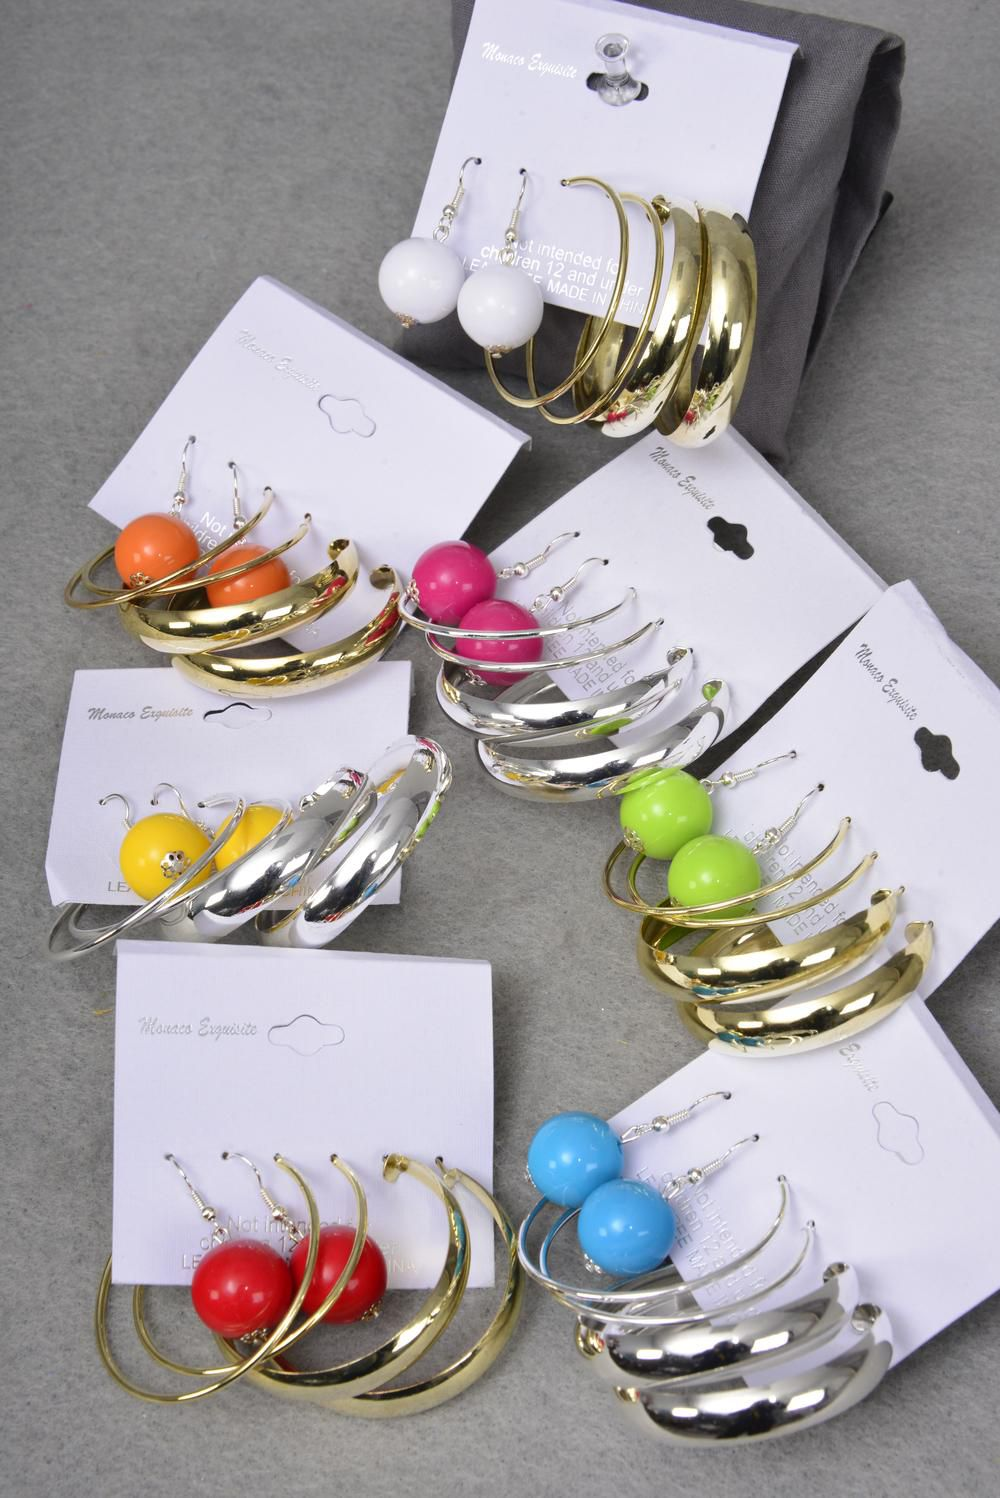 "Earrings 3 Pair 12mm Color Ball & 1.75"" Hoop Mix/DZ Hoop Size-1.75"" Wide,6 Gold & E Silver Mix,7 Color Ball,Earring Card & OPP Bag & UPC code,3 Pair per card,12 card=Dozen -"